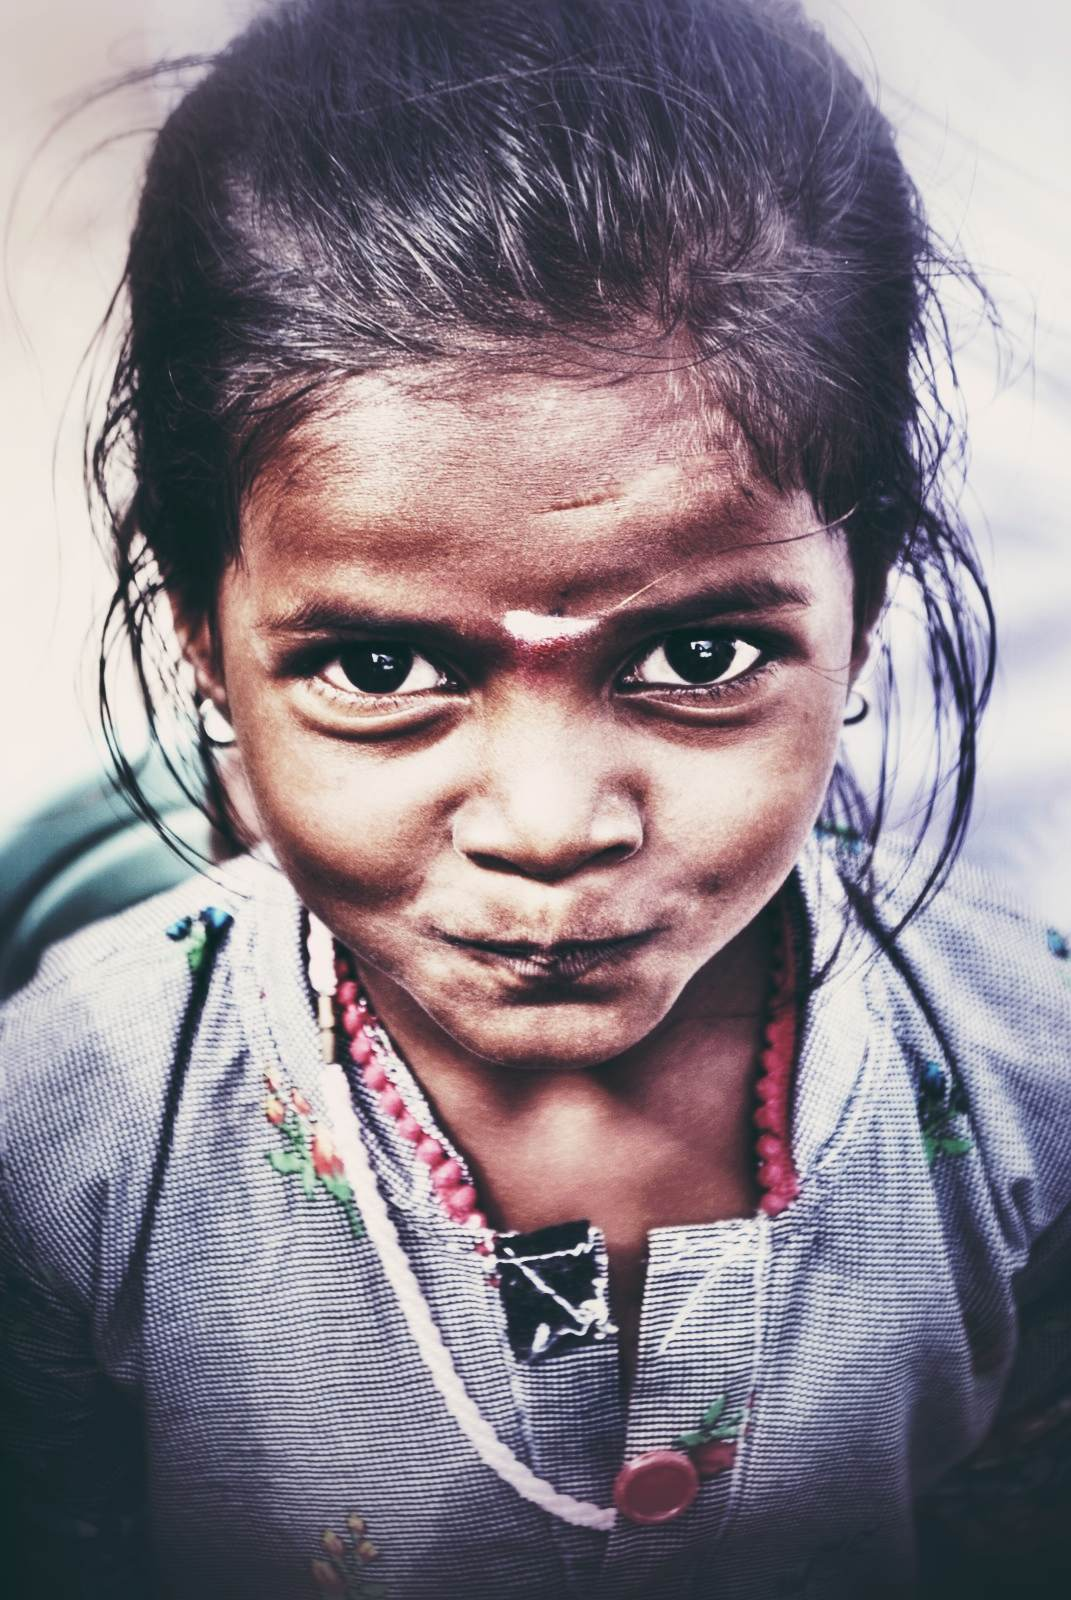 This is a little girl I met in the streets of Hampi, Karnataka, India. She seemed so excited to be captured by my big camera.